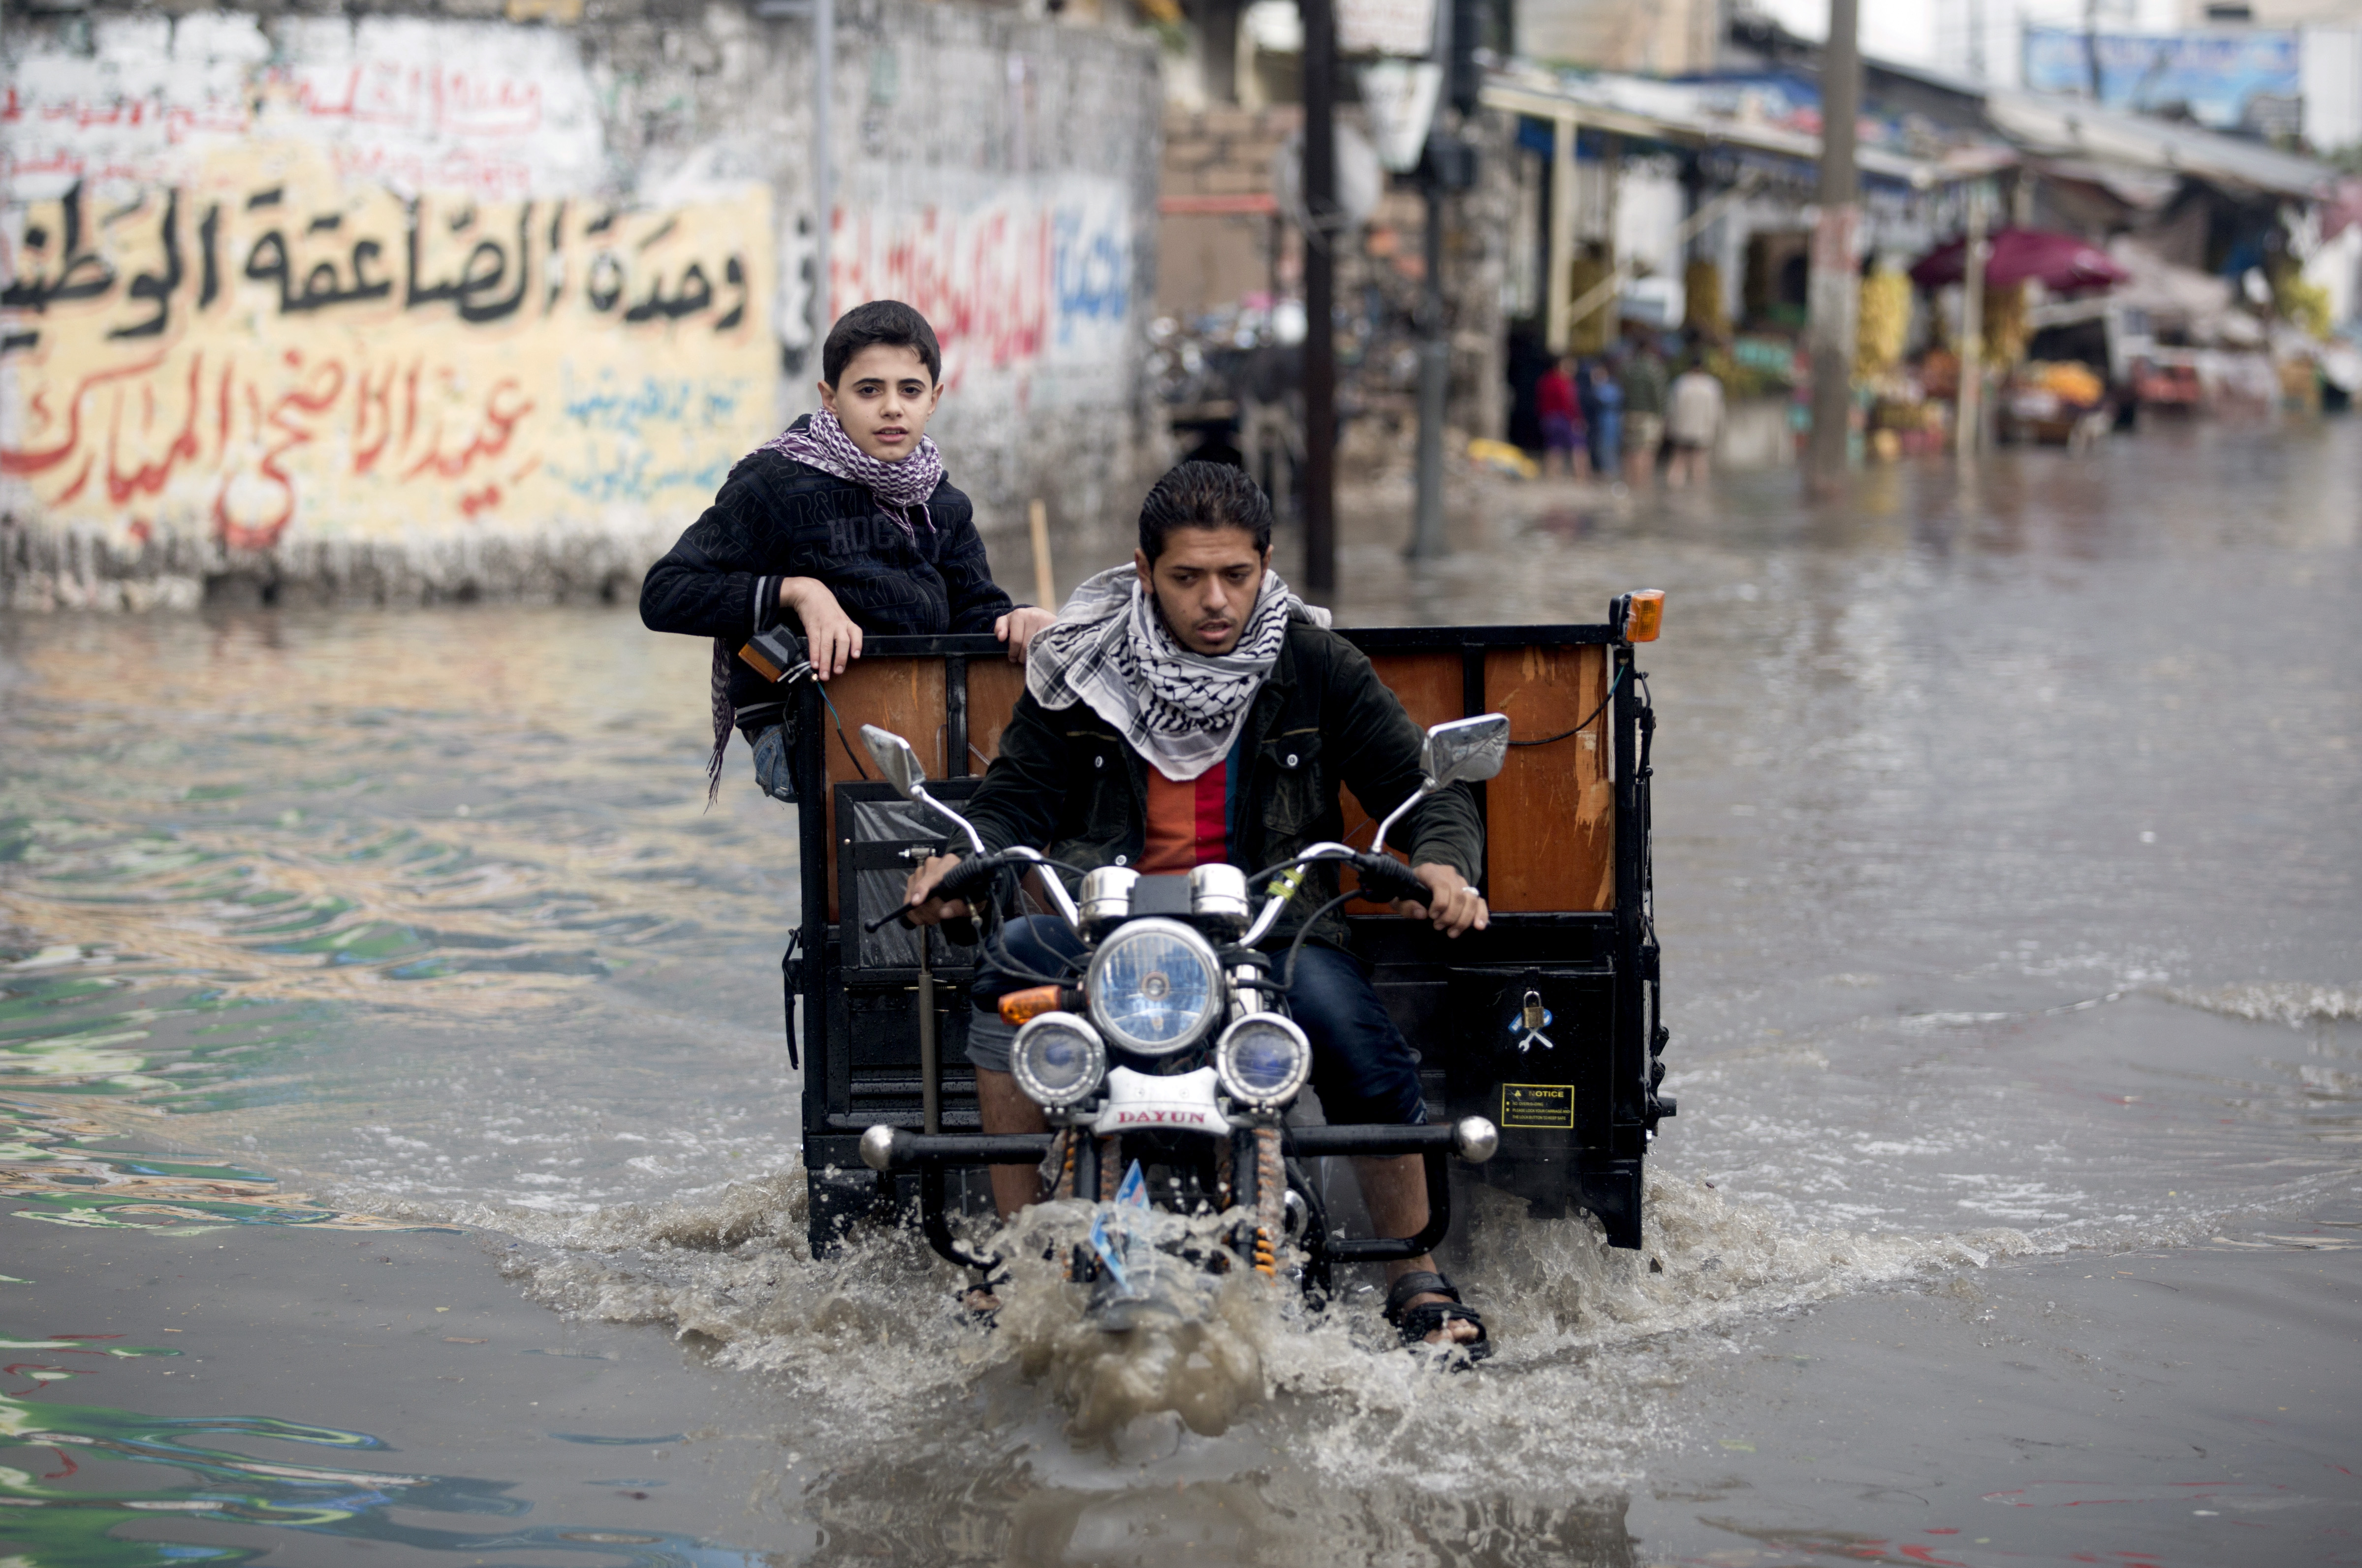 A Palestinian rides his trike through a flooded street following the heavy floods of 2013. Photo: AFP PHOTO/MOHAMMED ABED via Flickr/Globovisión (CC BY-NC 2.0)